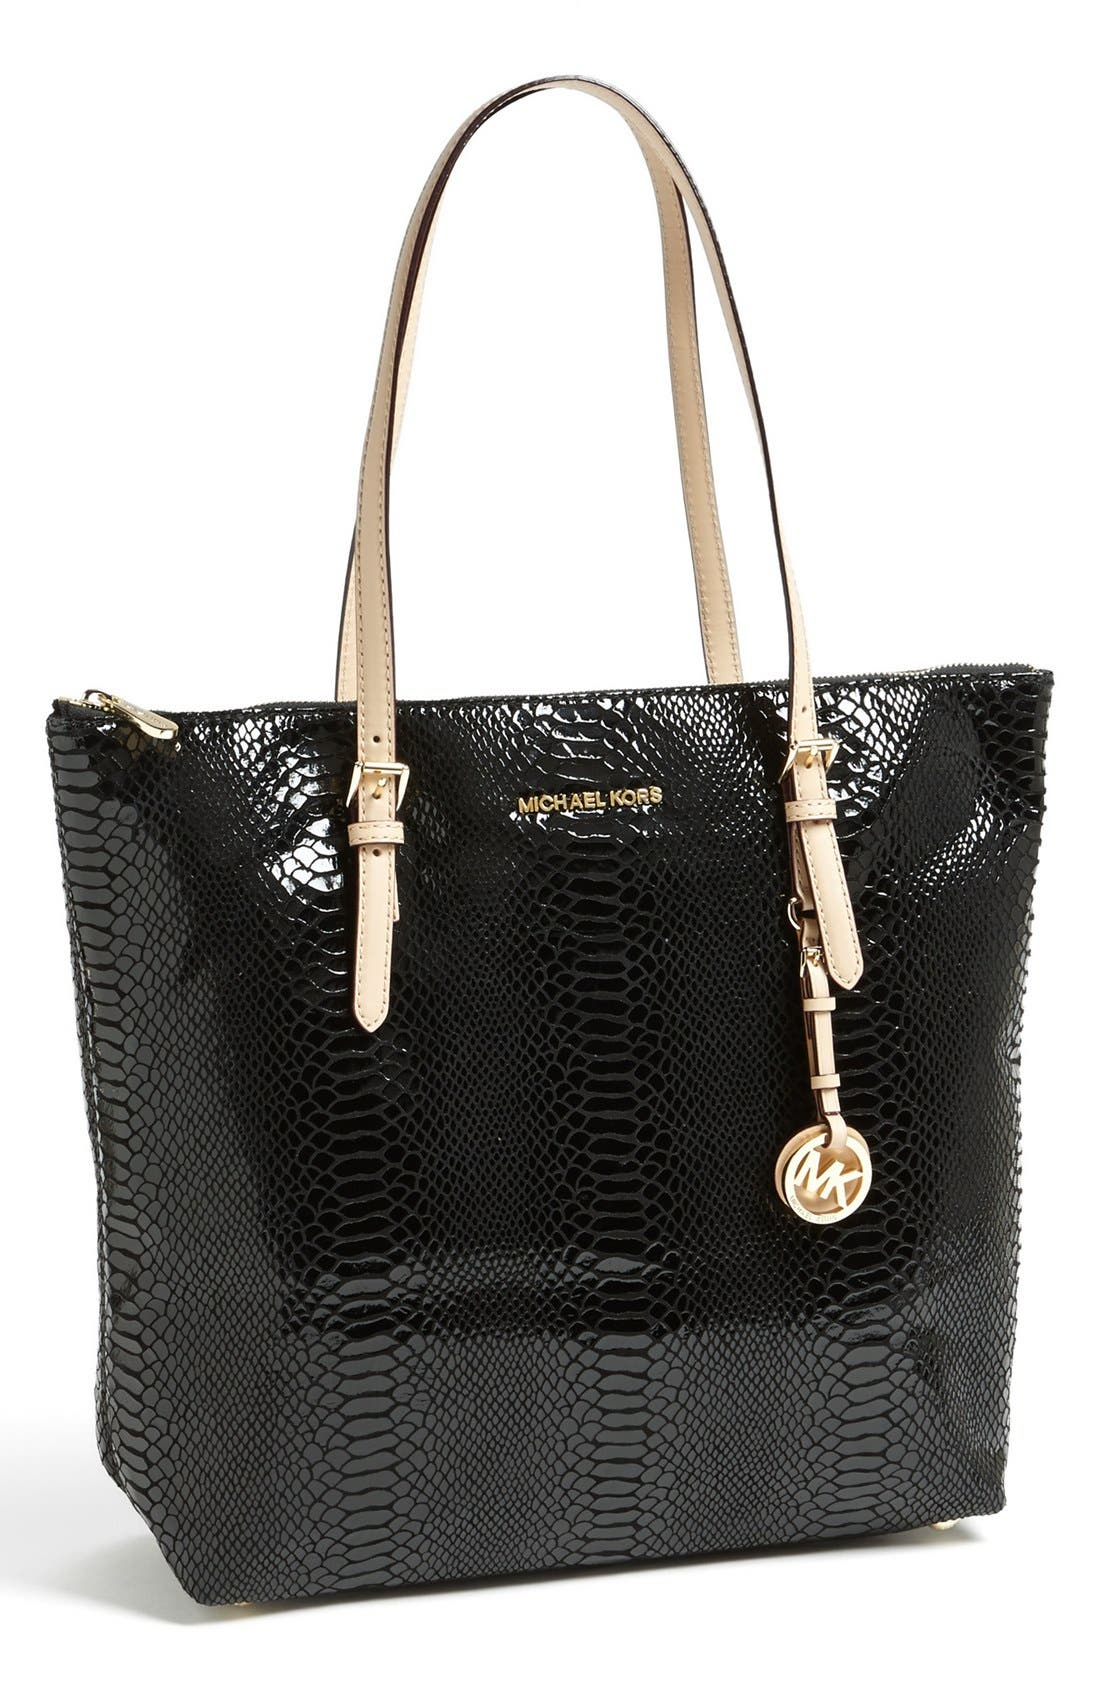 Main Image - MICHAEL Michael Kors 'Jet Set - Large' Patent Leather Tote